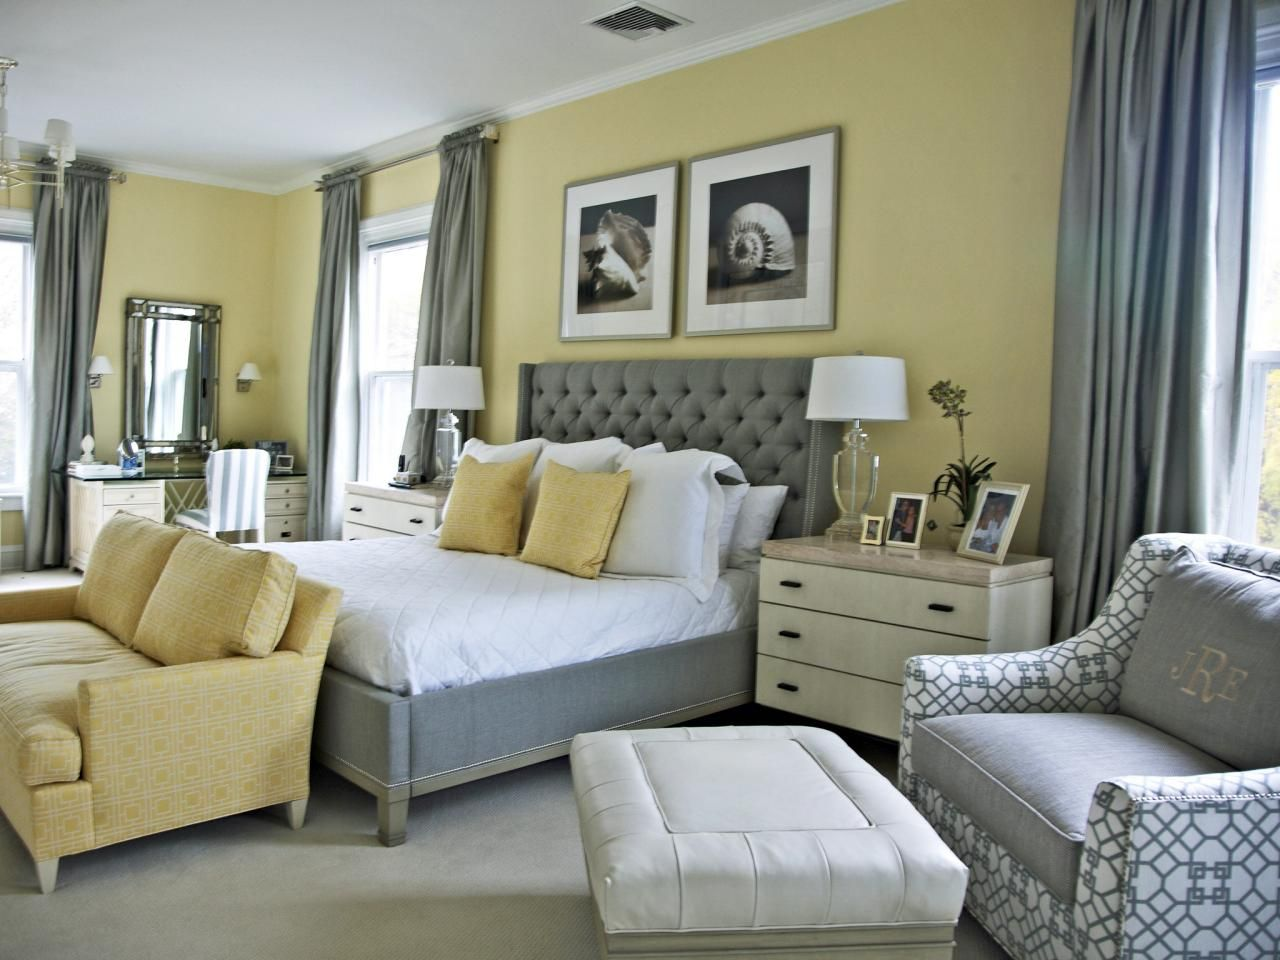 11 Cheery Yellow Bedrooms  Grey bedroom design, Yellow bedroom